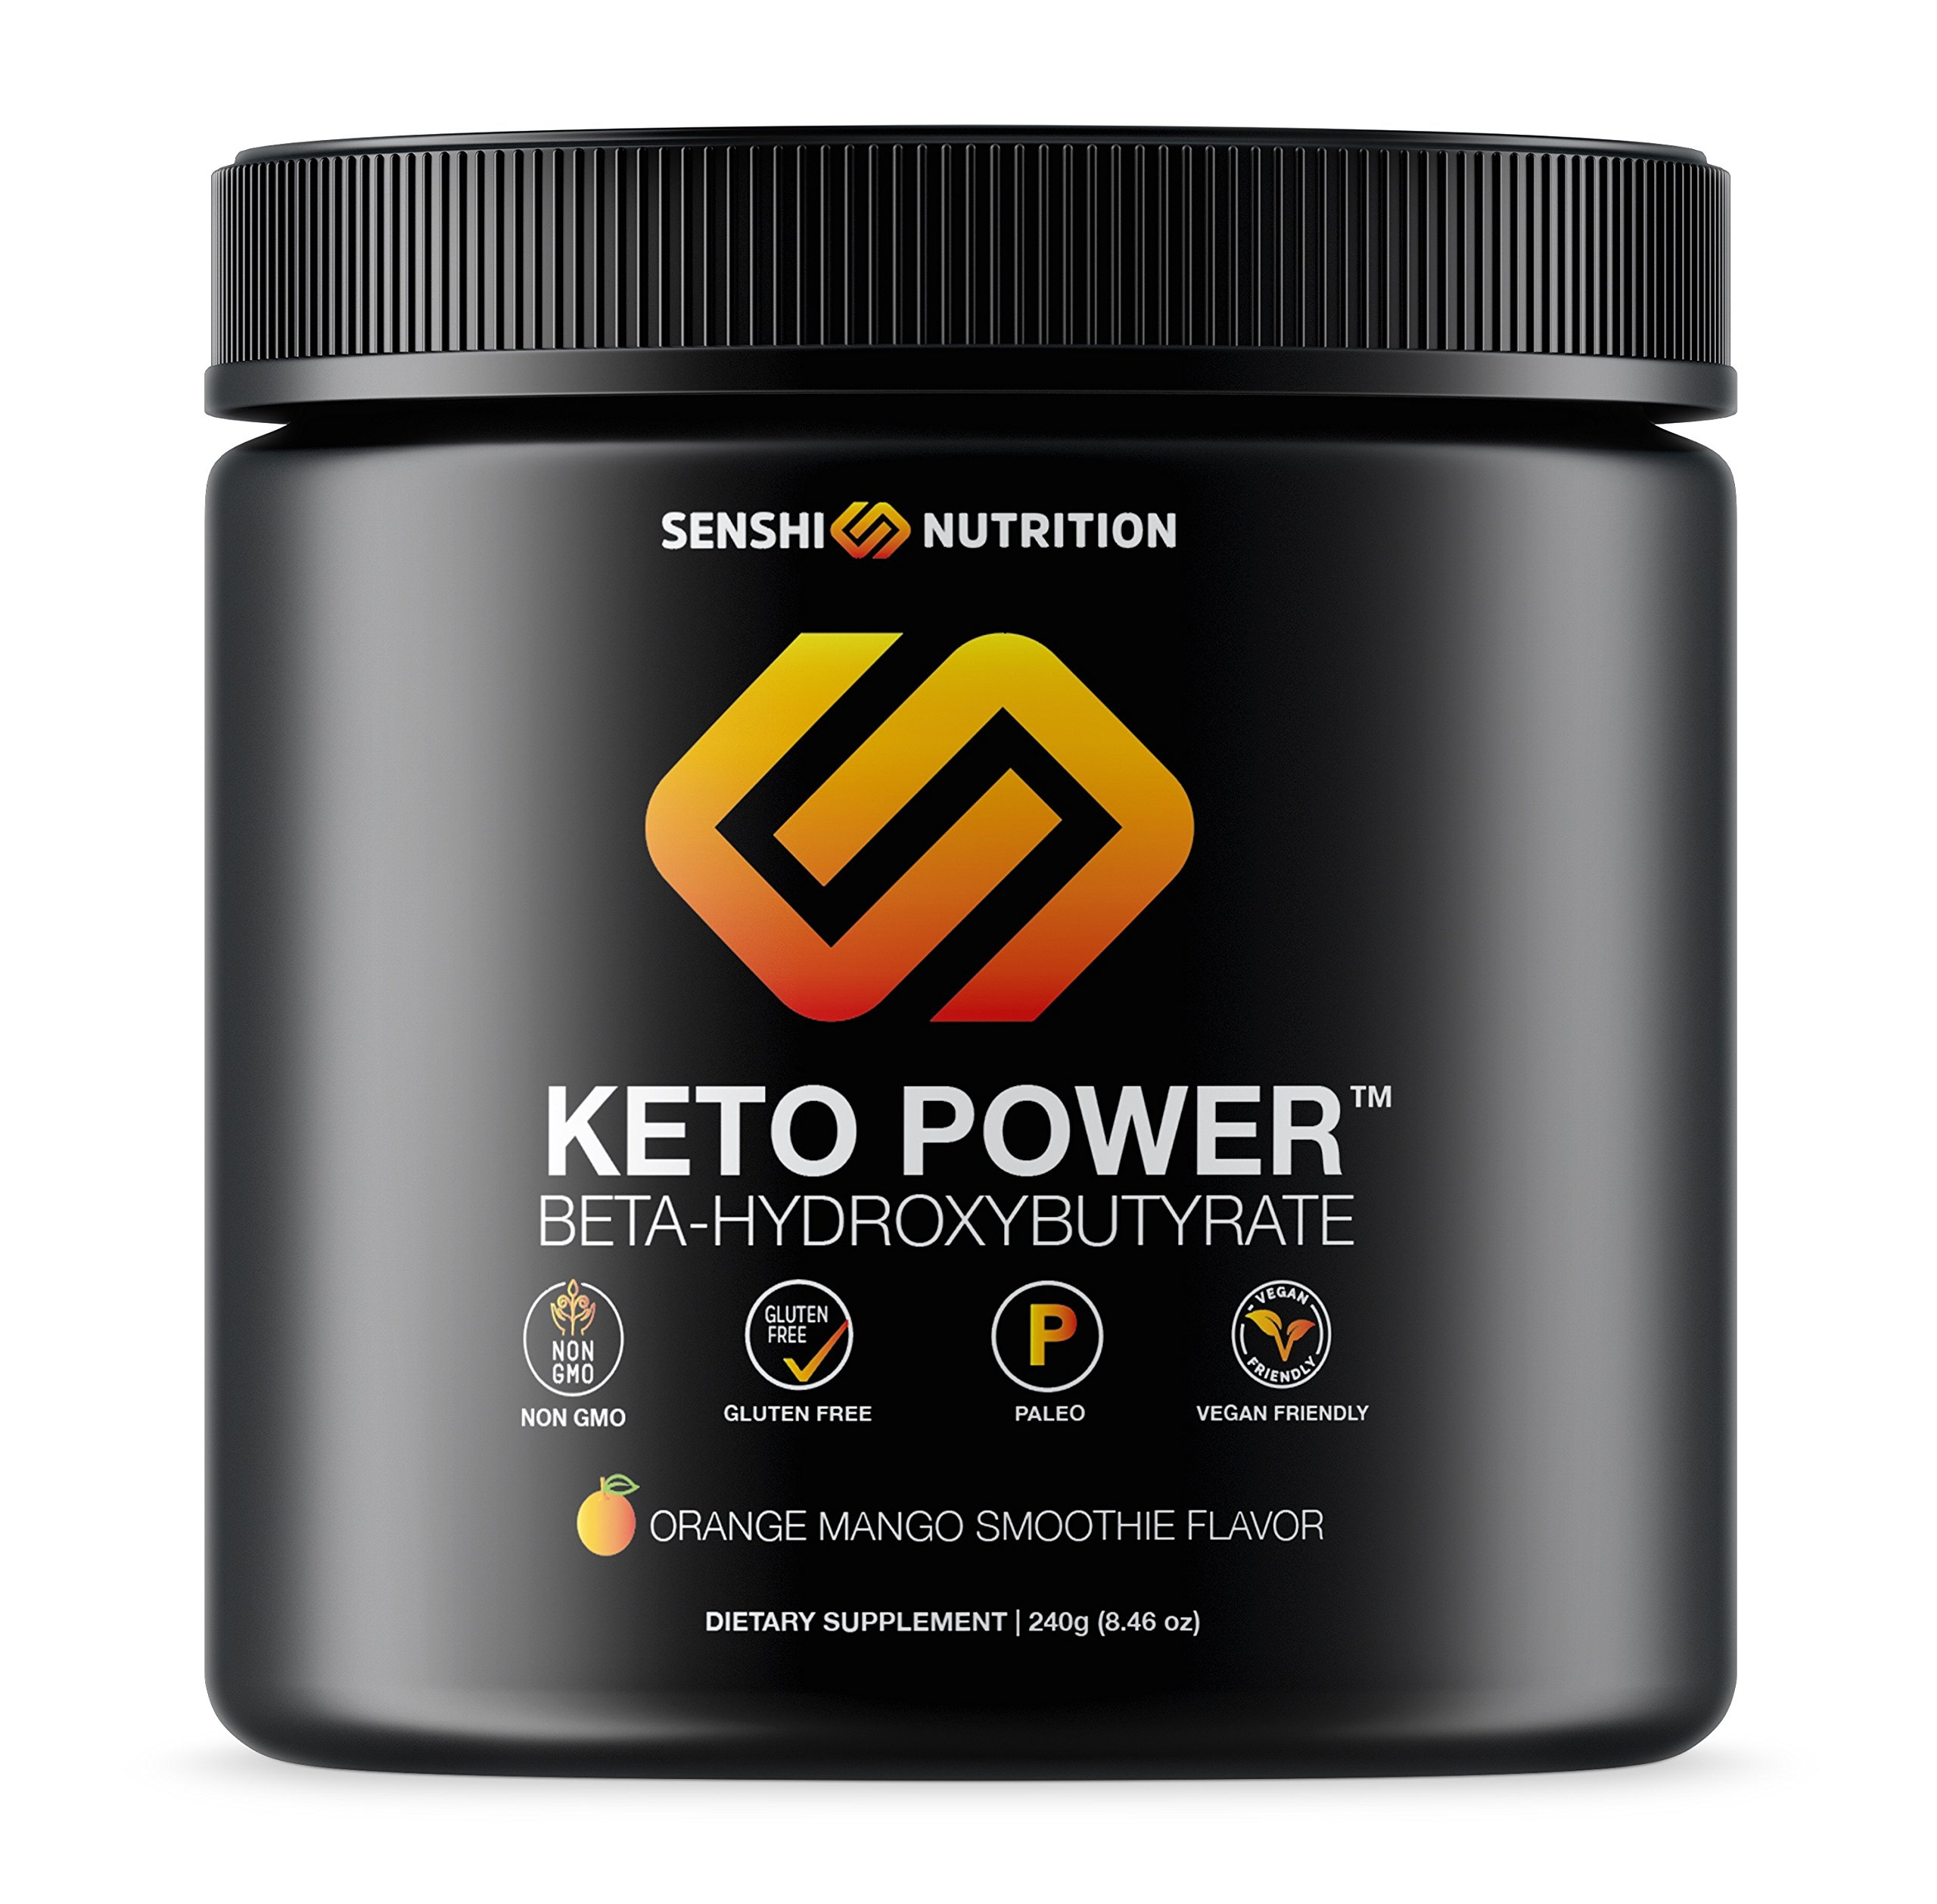 Keto Power - Exogenous Ketones Keto Diet Supplement - BHB Salts to Enhance Performance, Kickstart Ketosis, Increase Focus, Burn Fat for Energy - Orange Mango Beta-Hydroxybutyrates - goBHB by Senshi Nutrition